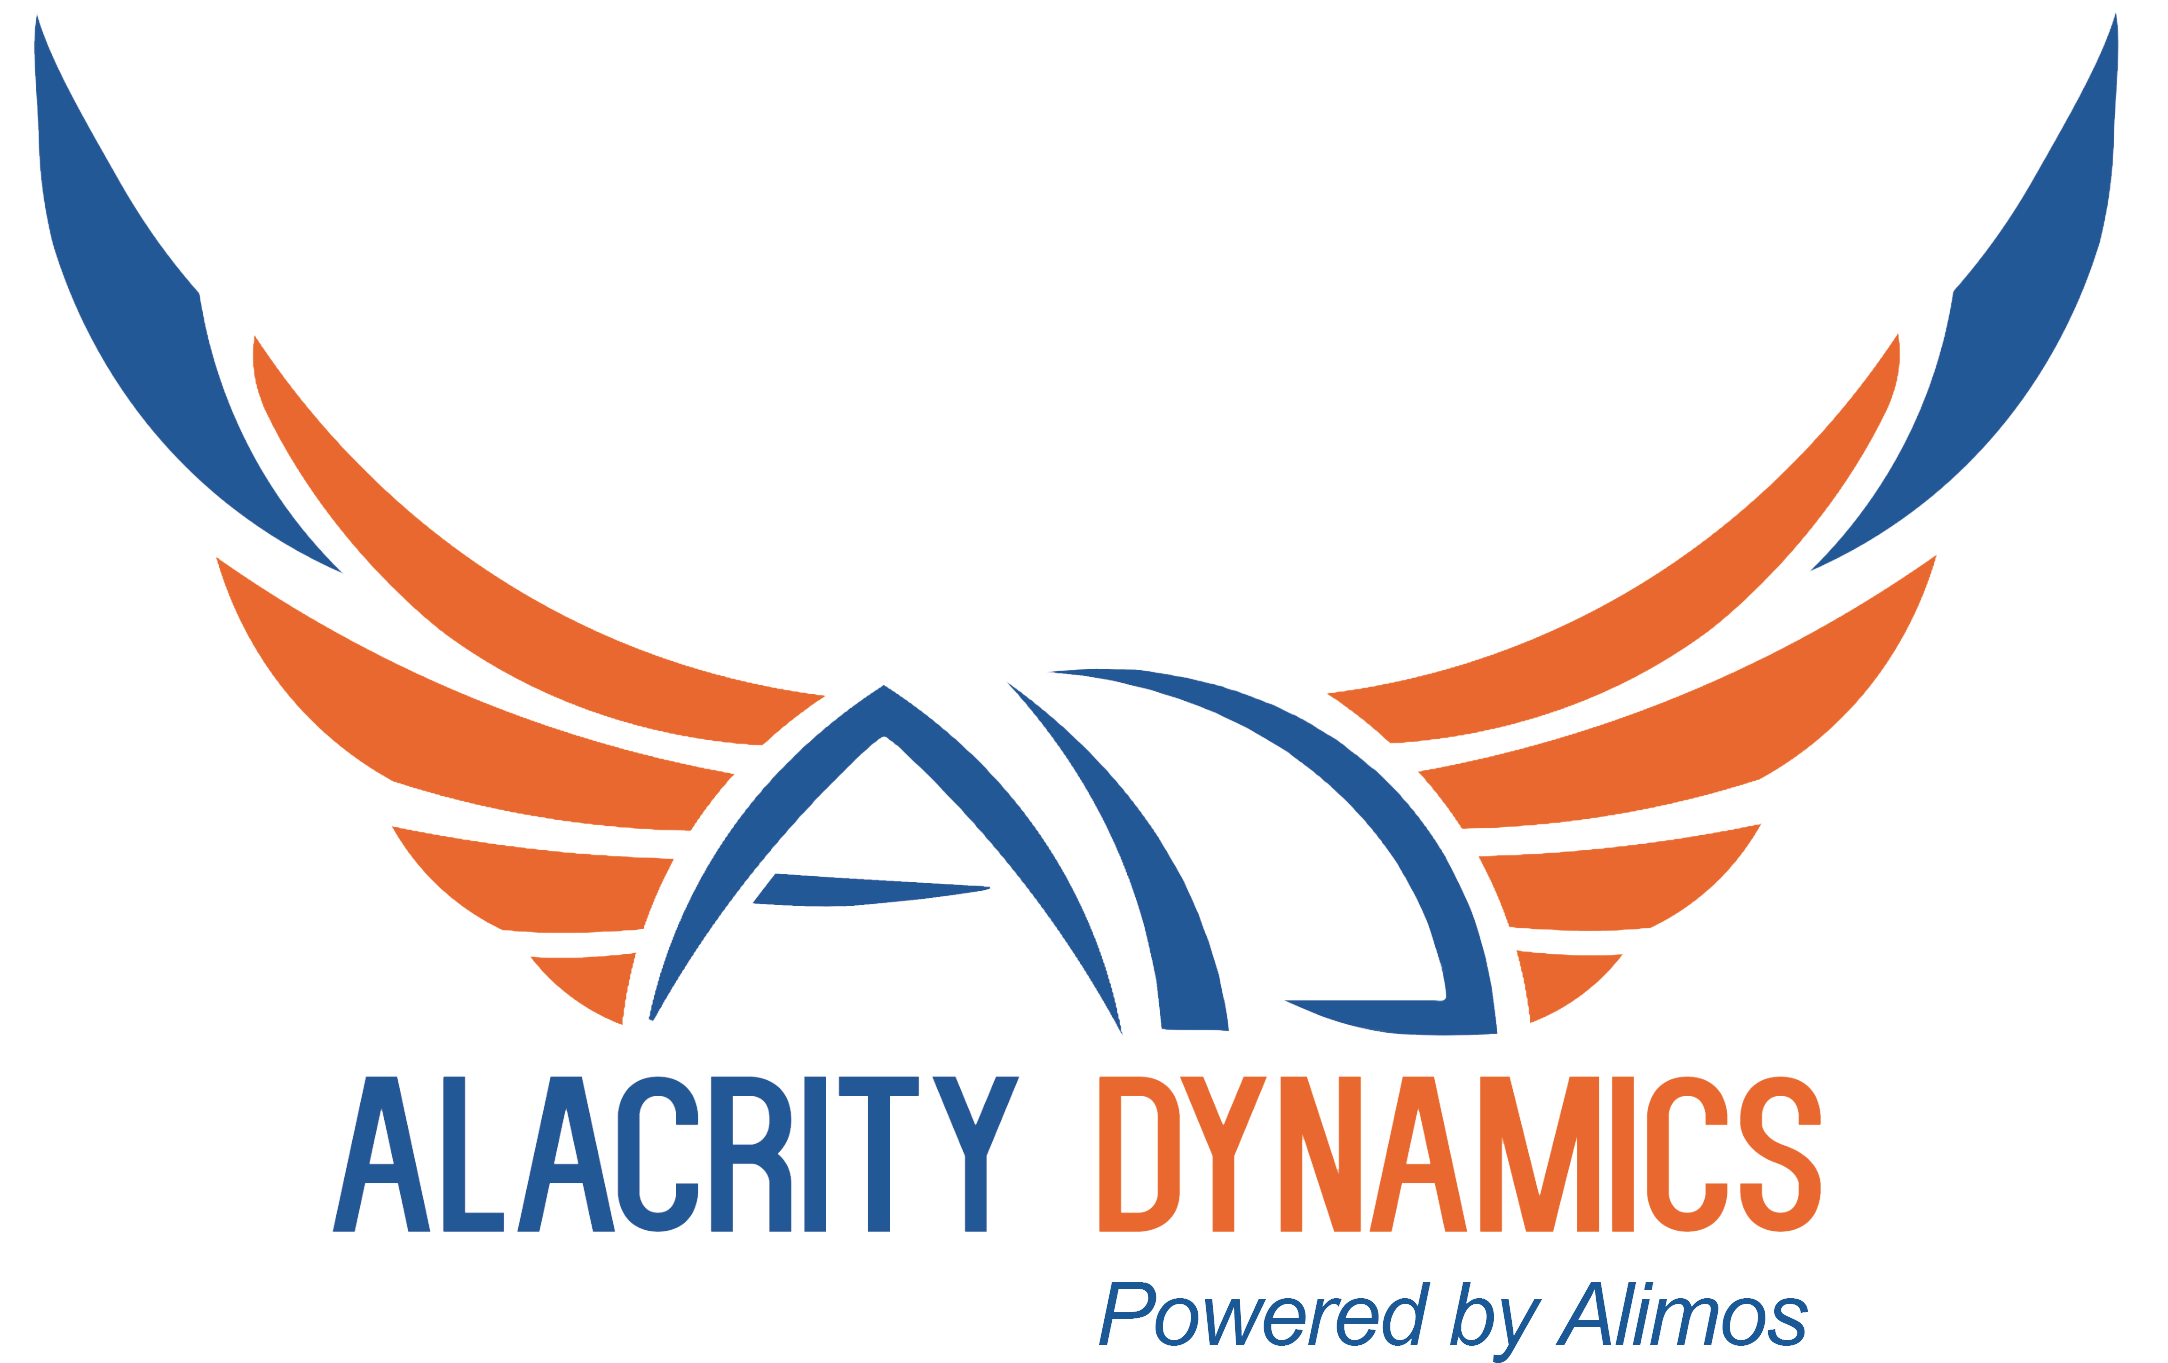 Alacrity Dynamics - We started as competitors but ended up making unbelievable friendships. Now we compete together and the only thing that can stop us is air resistance.